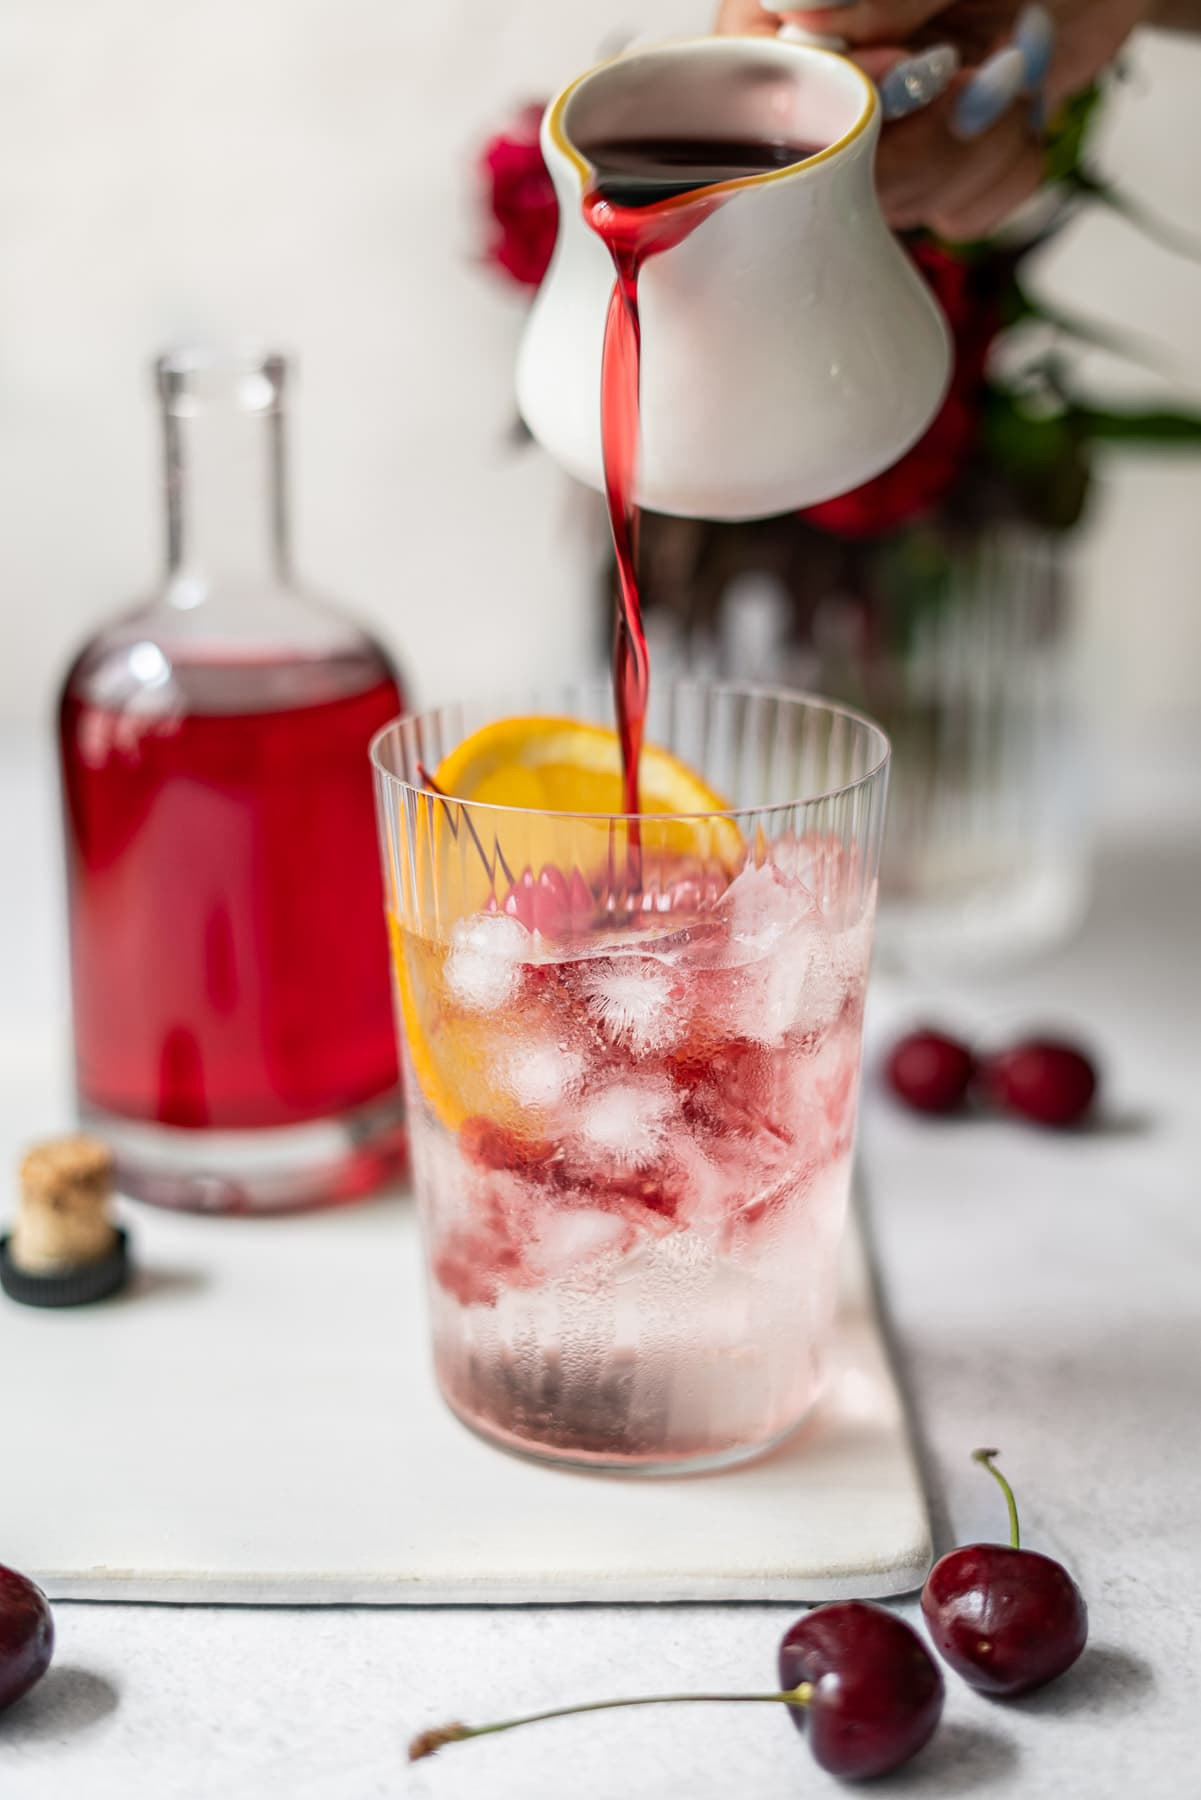 pouring grenadine into a cup with lemon lime soda